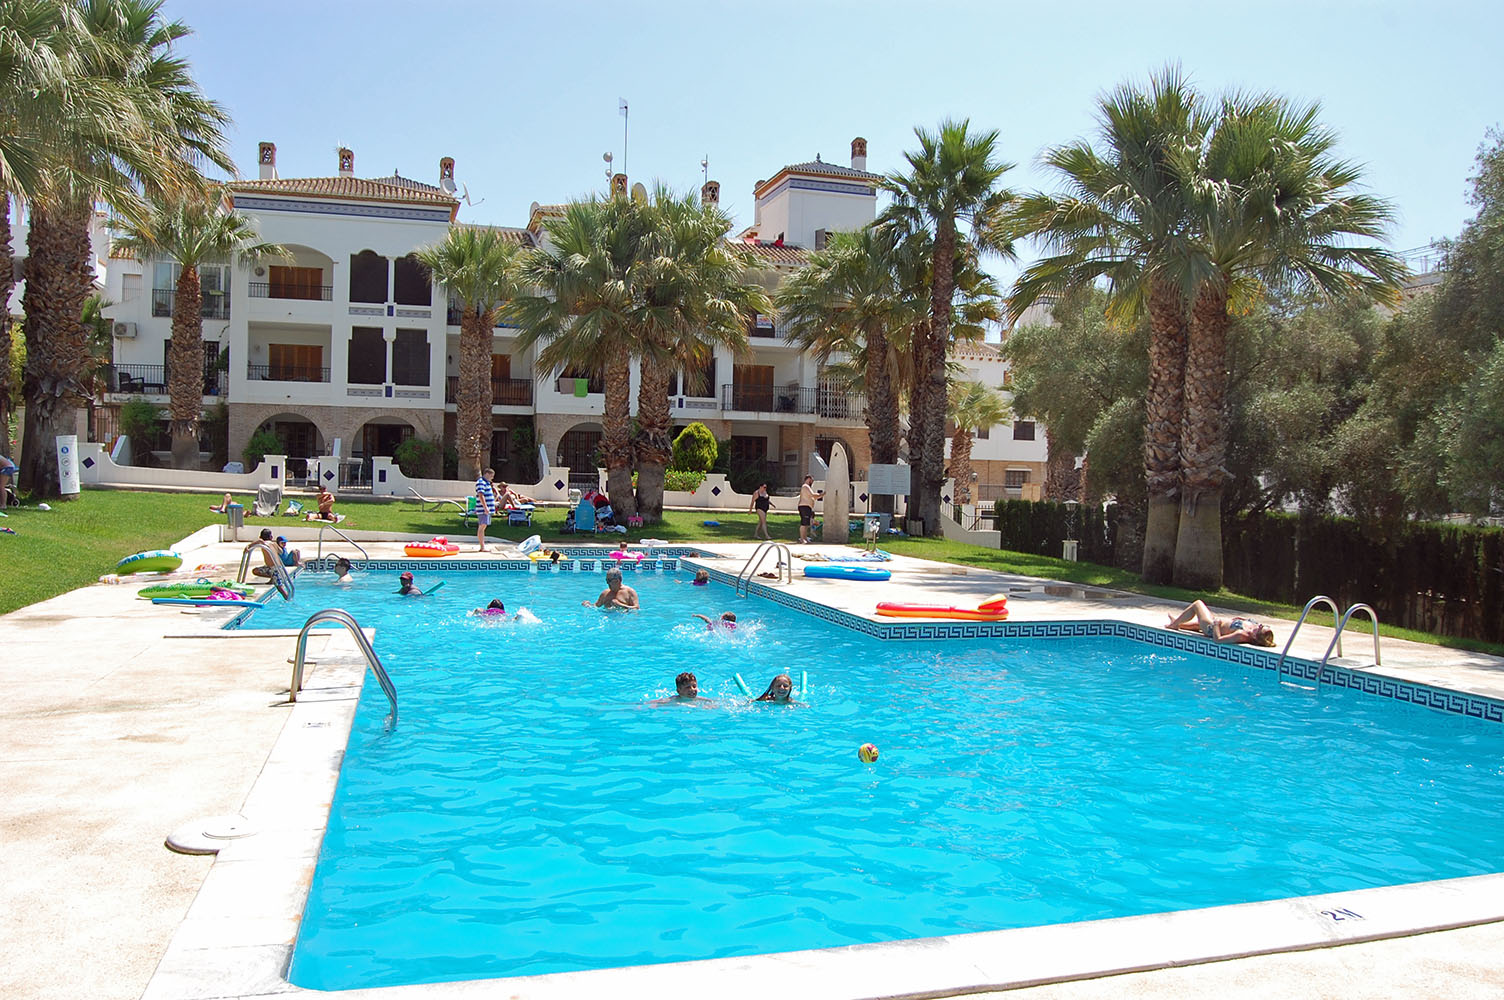 ITSH Property Villamartin Plaza communal pool 2